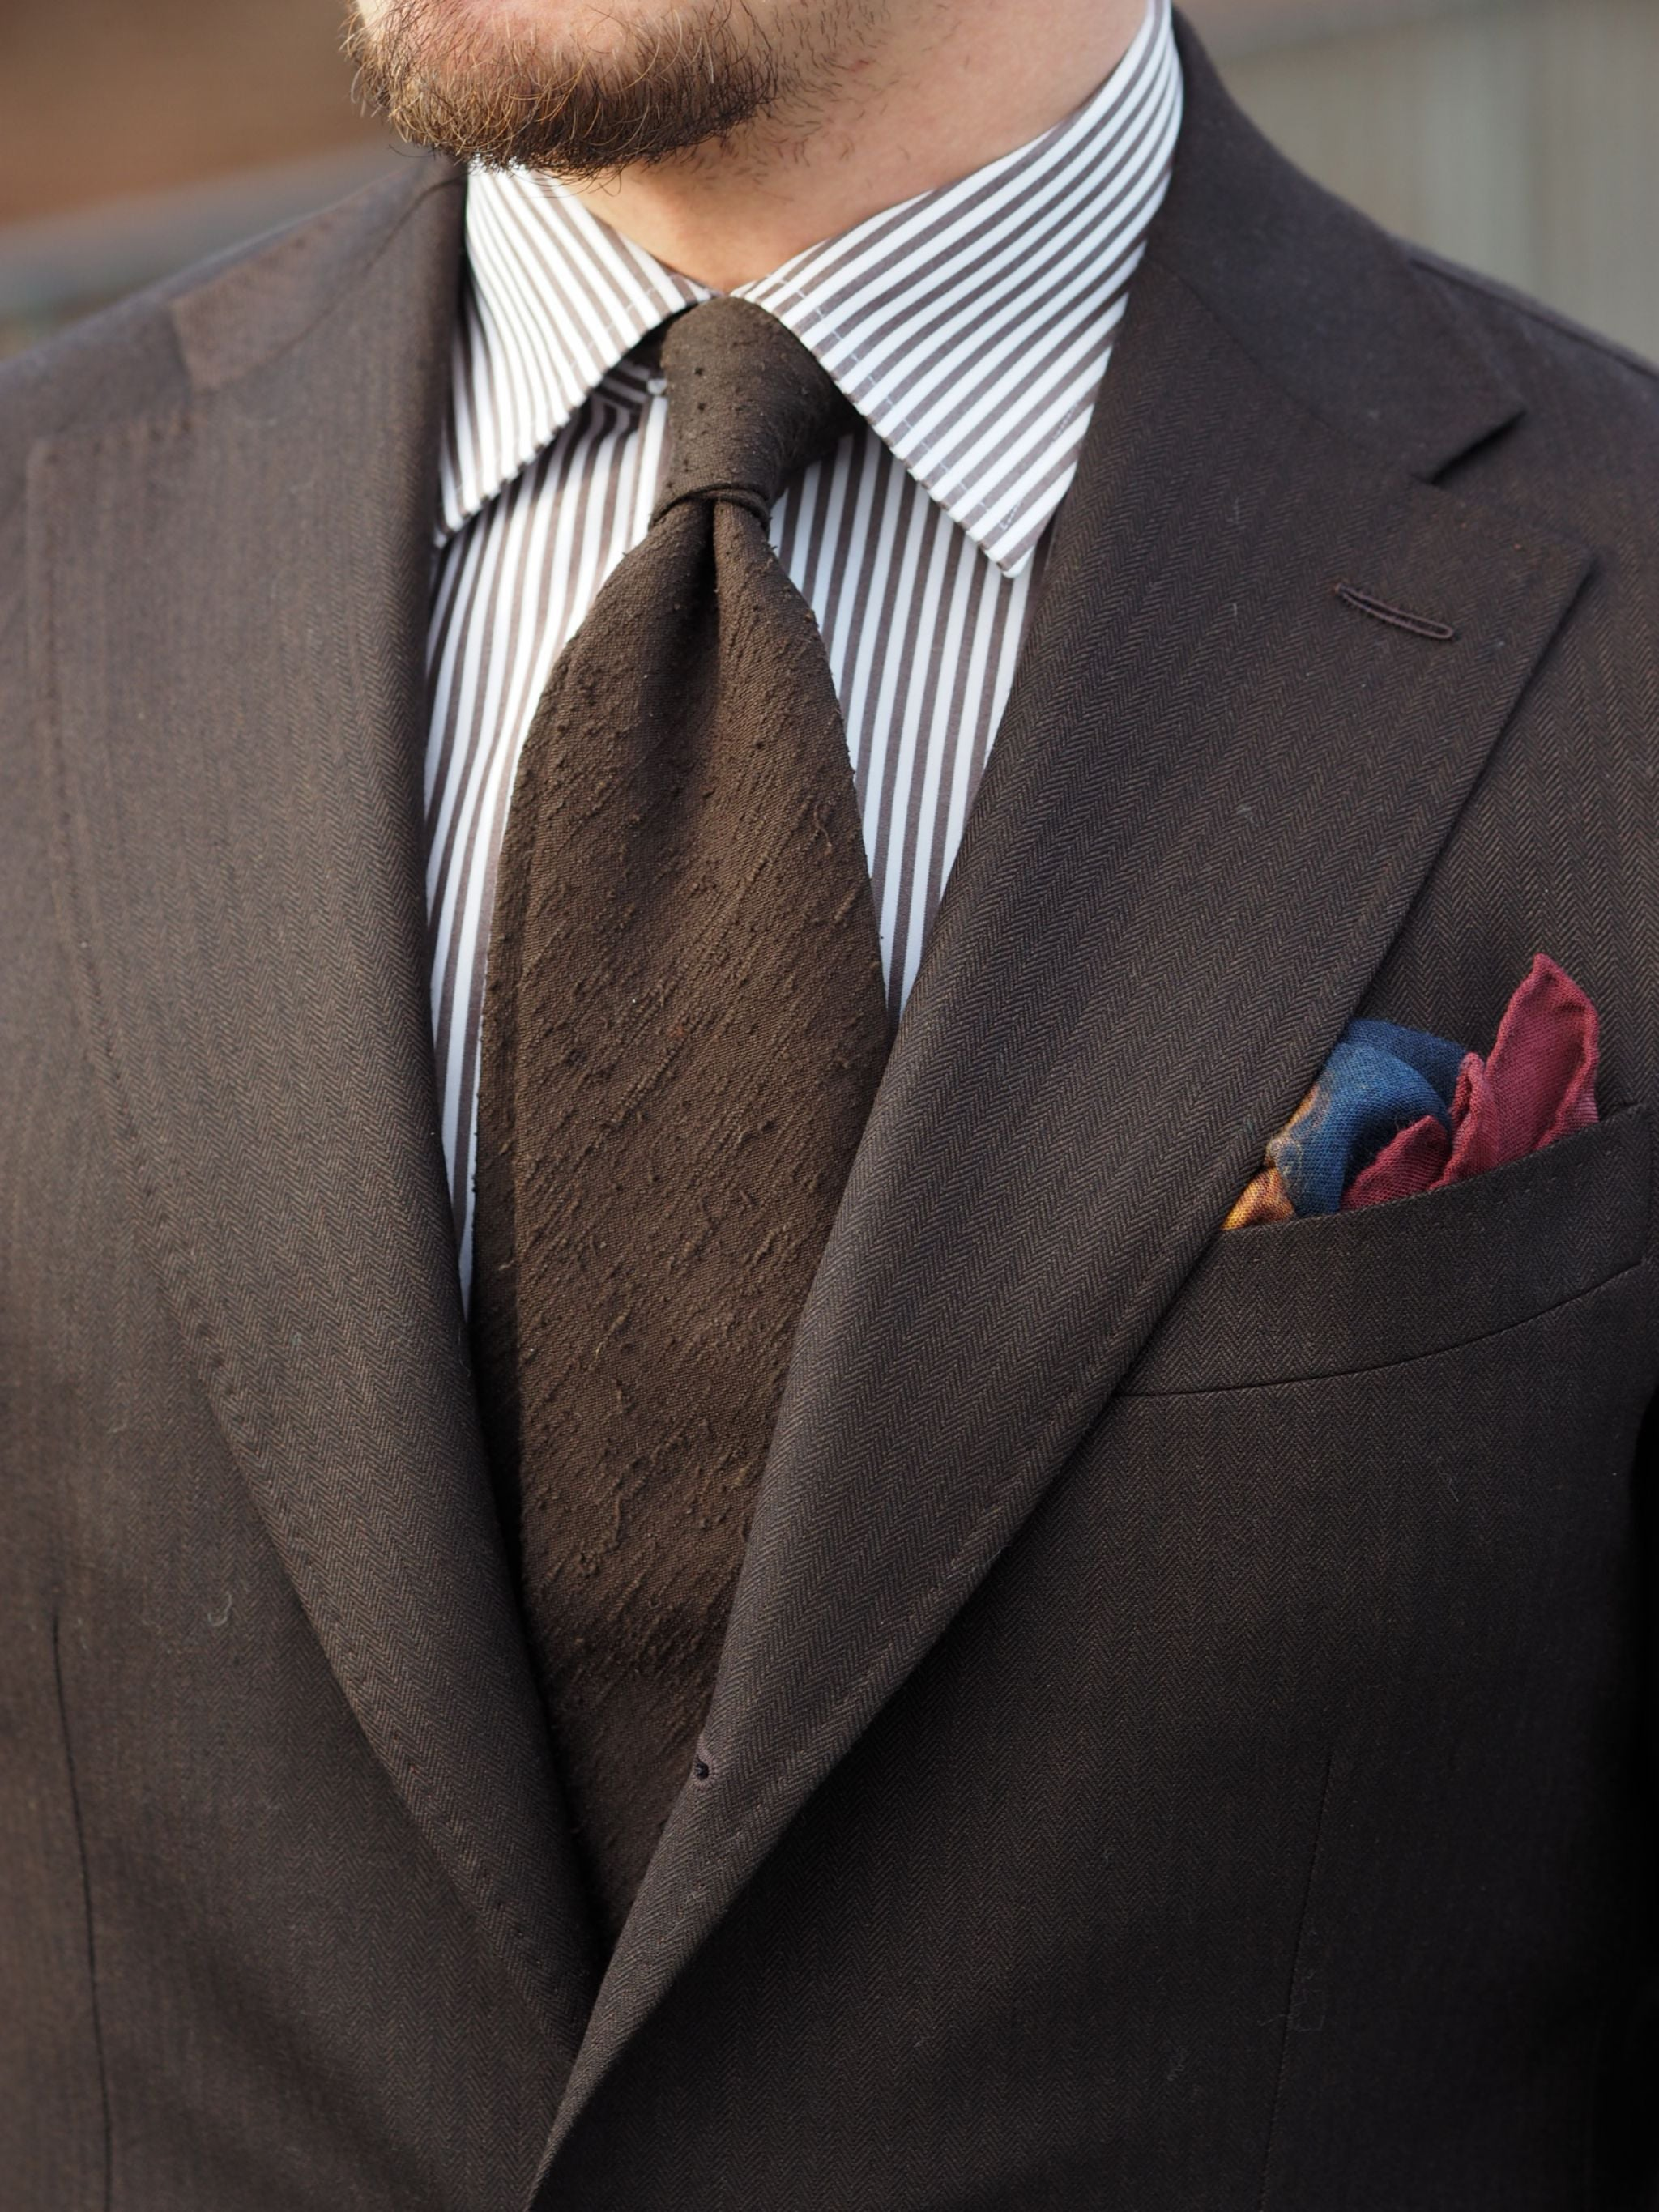 Suit for all seasons - close-up of the brown herringbone wool fabric and details.